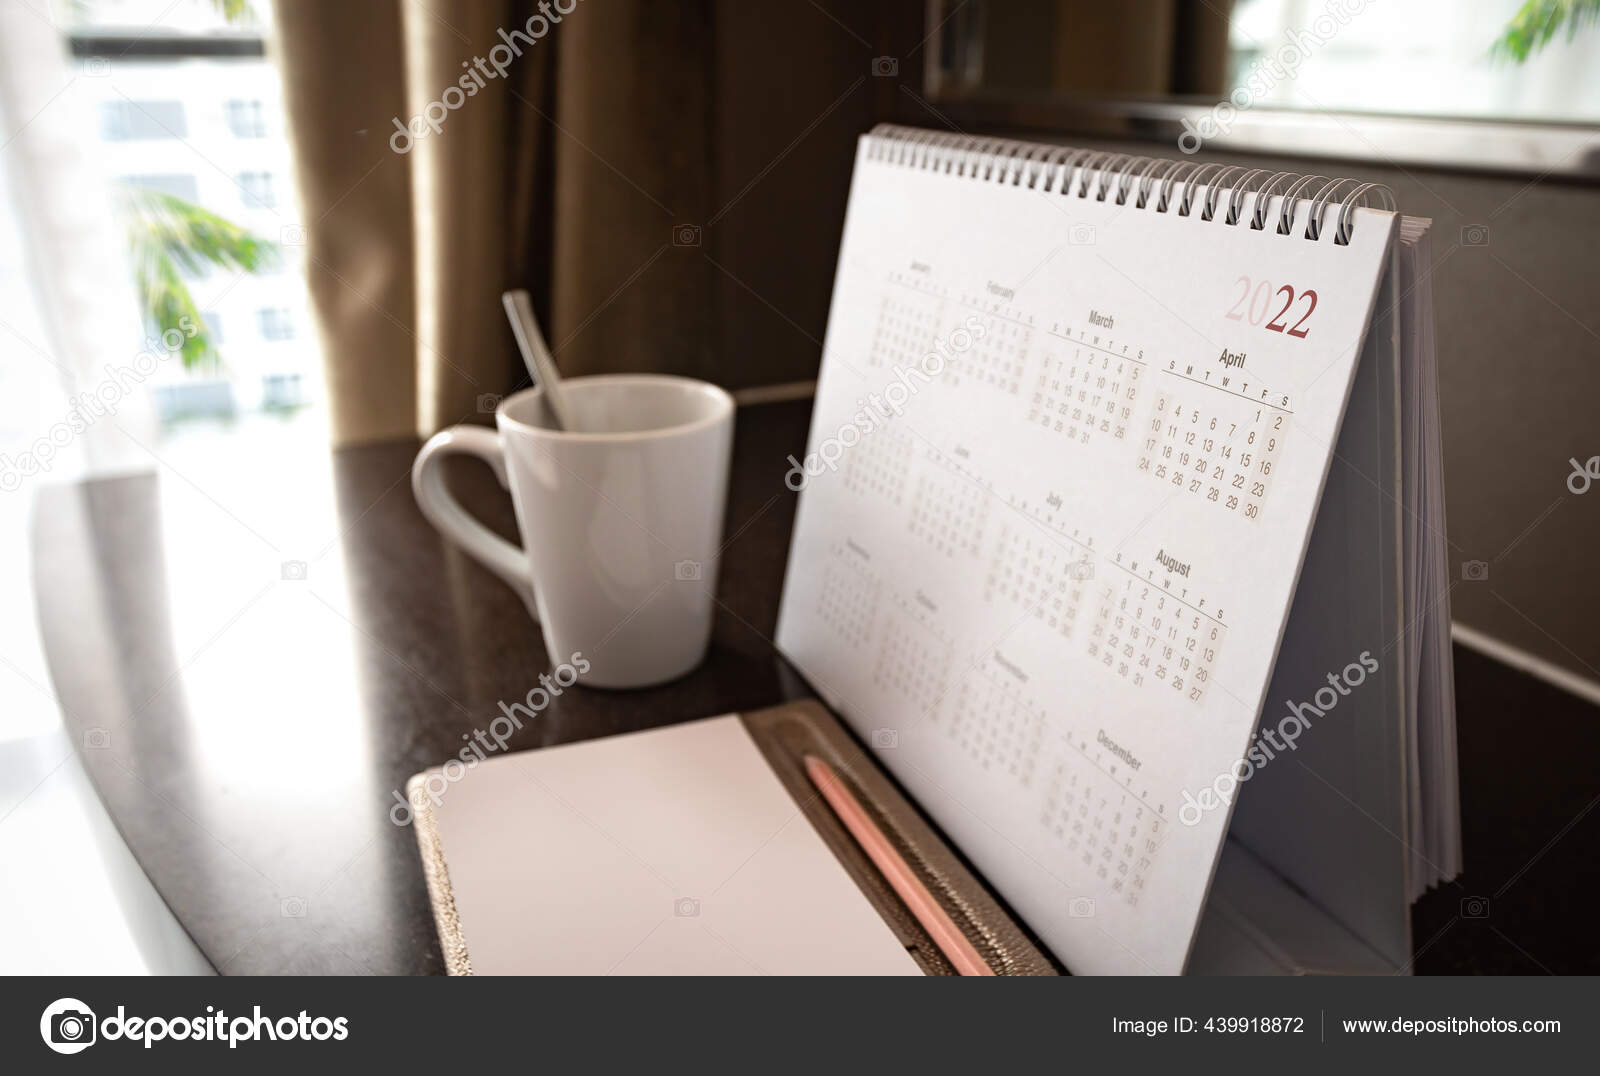 Desktop Calendar 2022 Coffee Cup Wooden Desk Private Office Stock Photo Image By C Choat 439918872